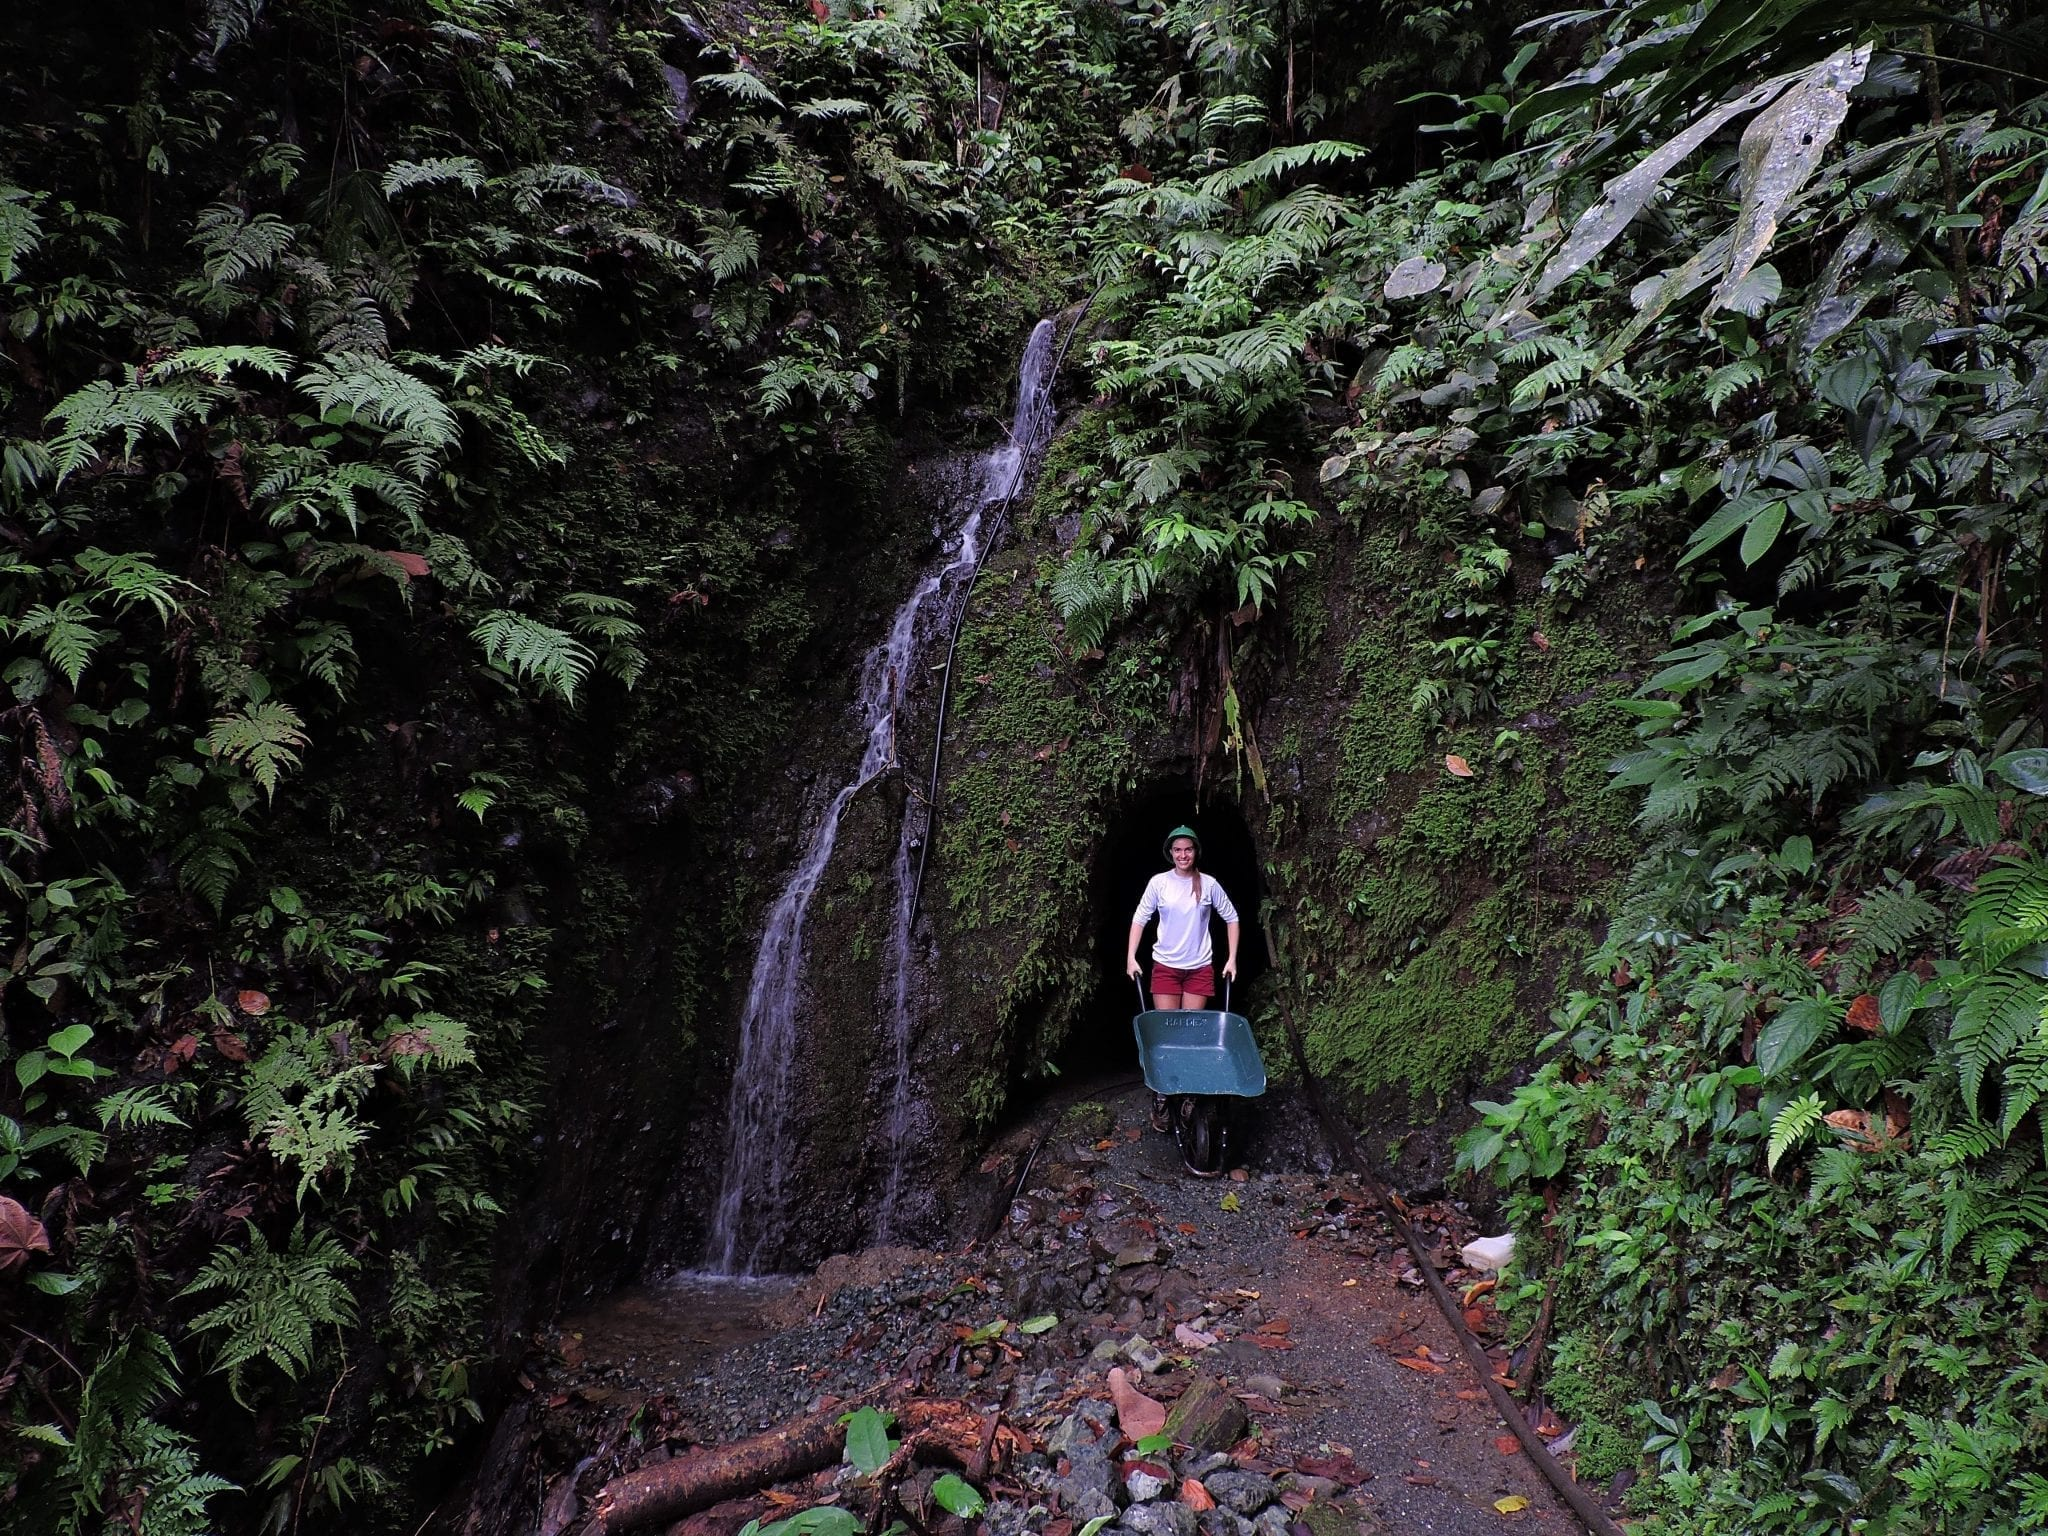 God mining used to be an important economical support for Osa Peninsula, however it is not practiced in the area since the creation of Corcovado National Park, due to high ecological damage delivered to local jungles.